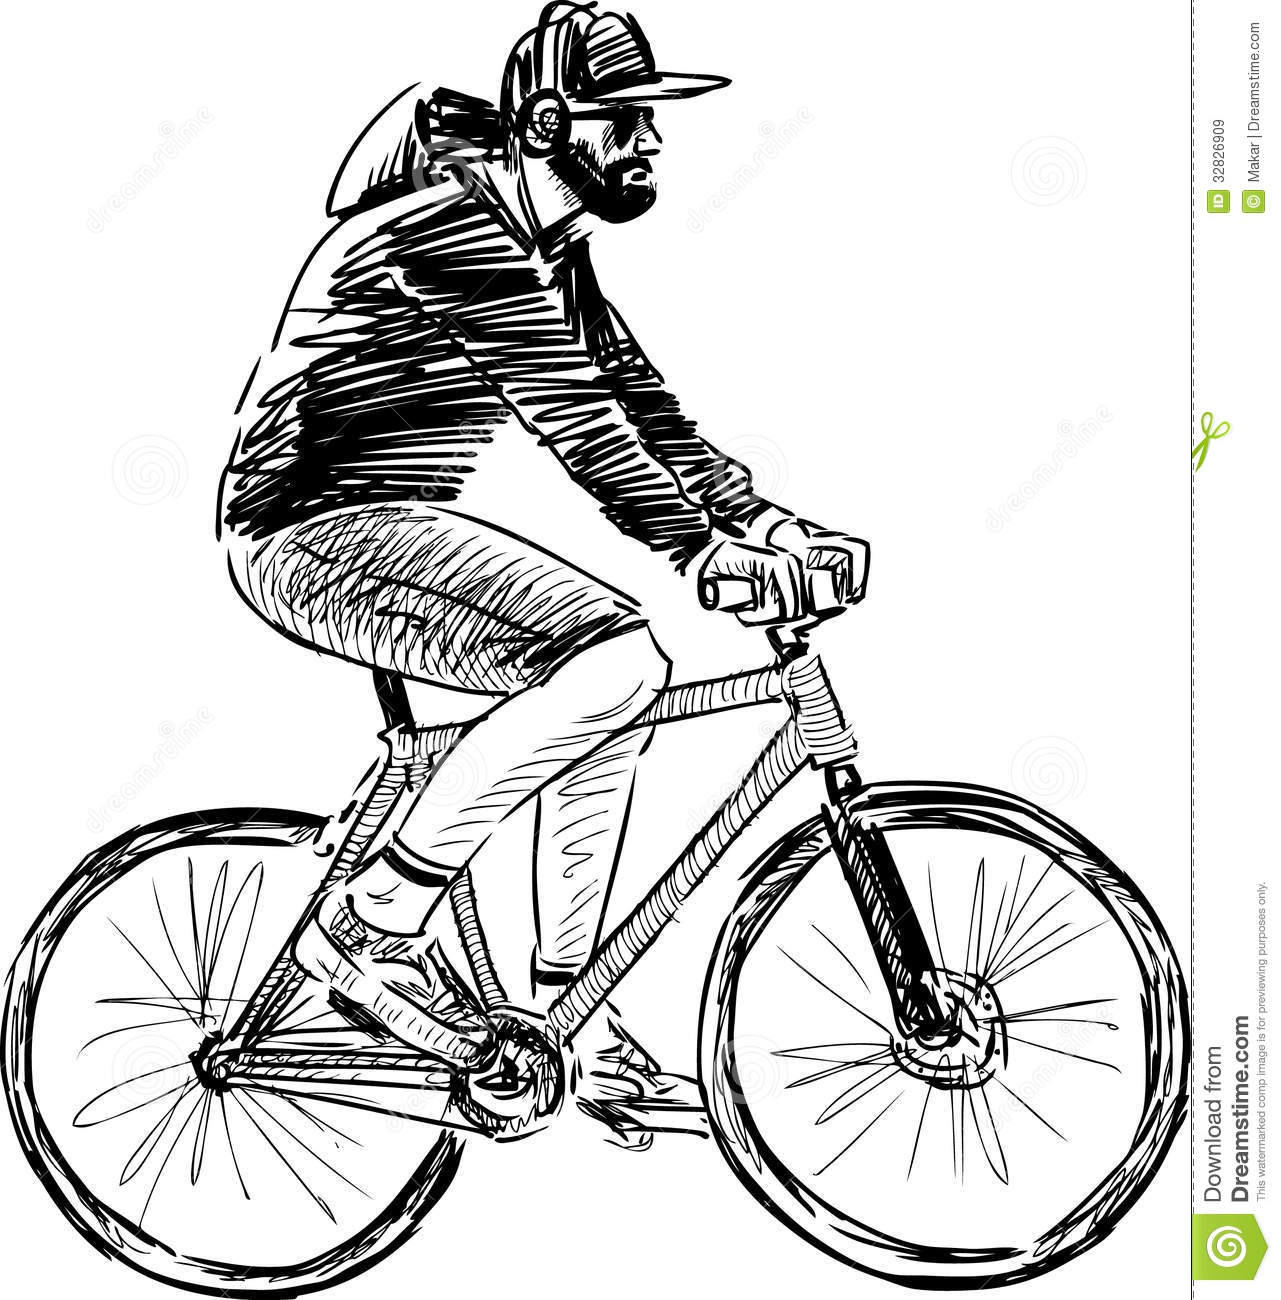 Man Riding A Bicycle Royalty Free Stock Images - Image: 32826909